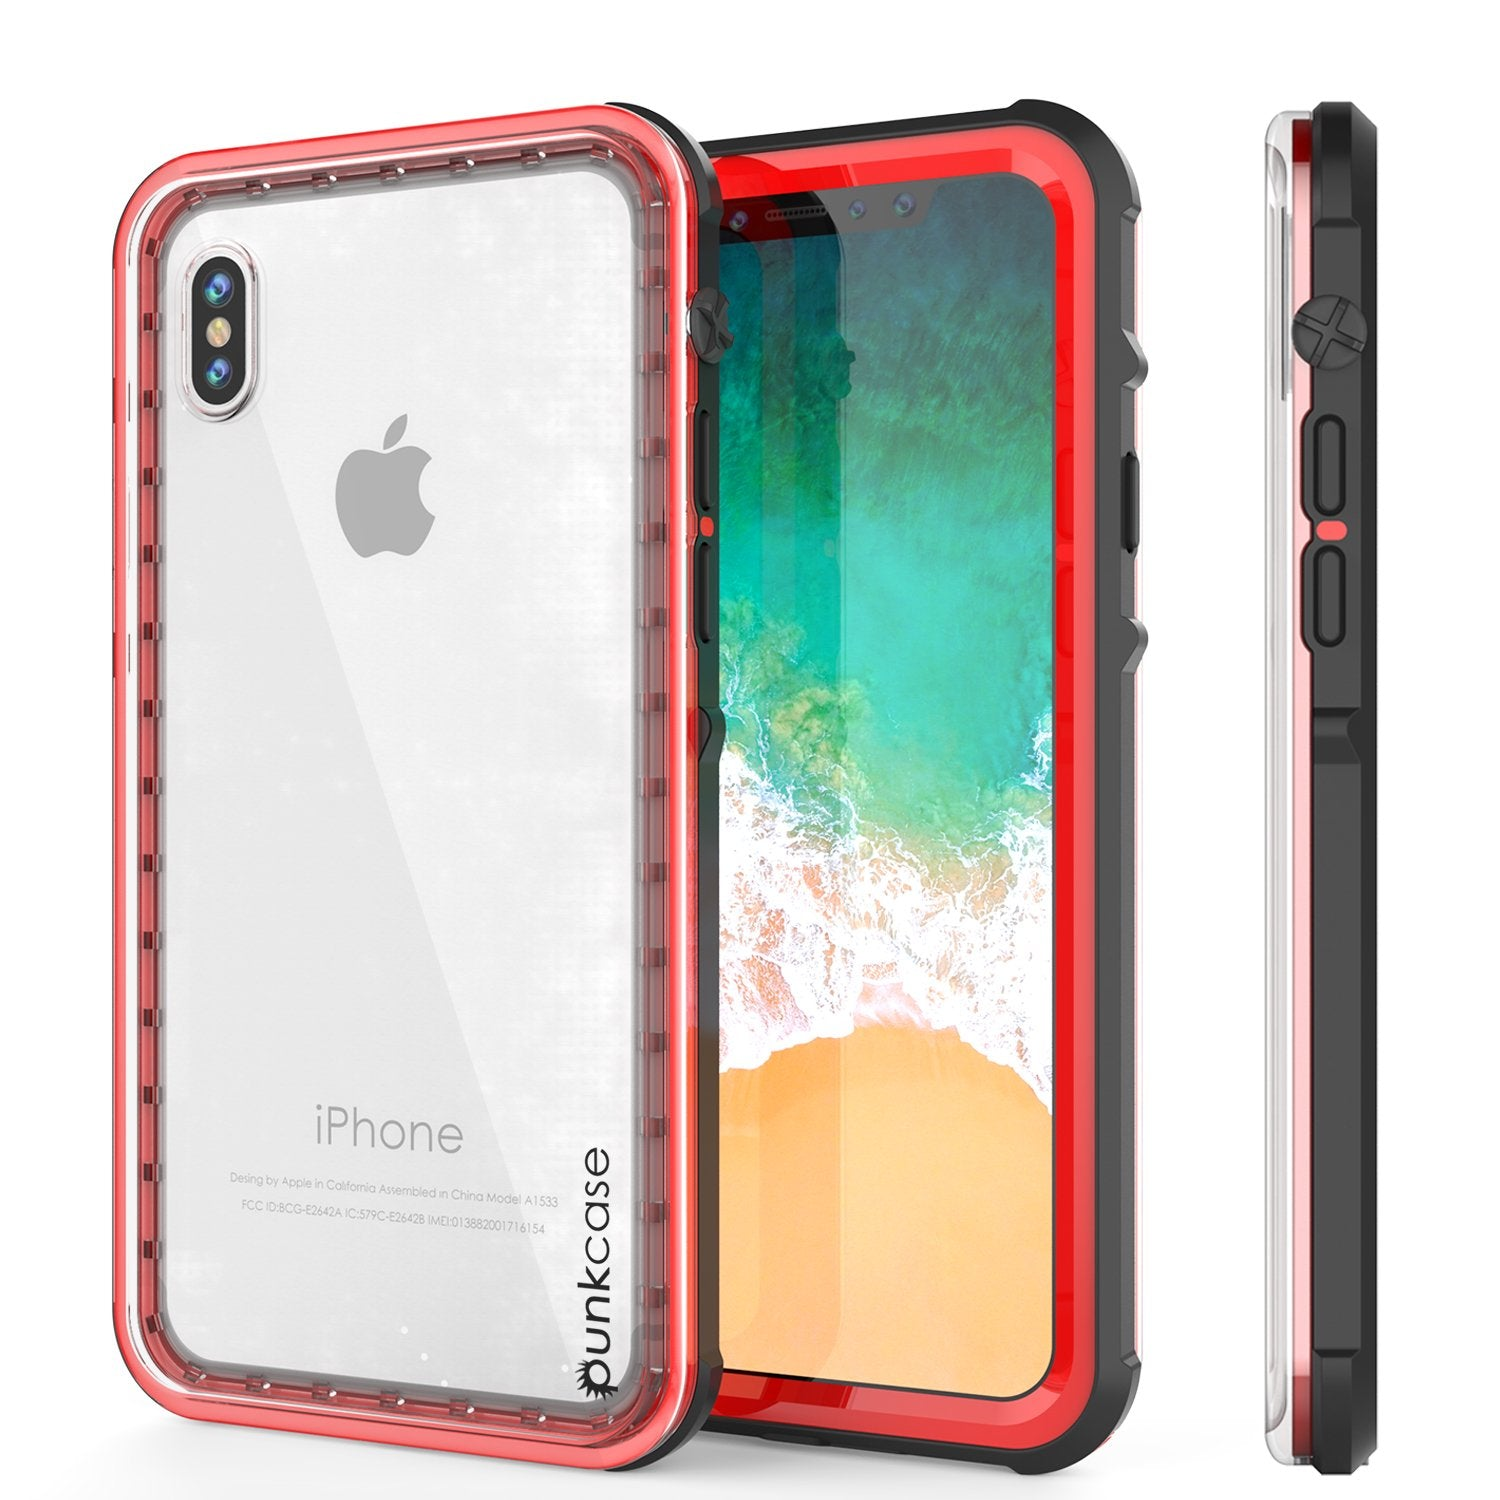 iPhone XS Case, PUNKCase [CRYSTAL SERIES] Protective IP68 Certified Cover [Red]